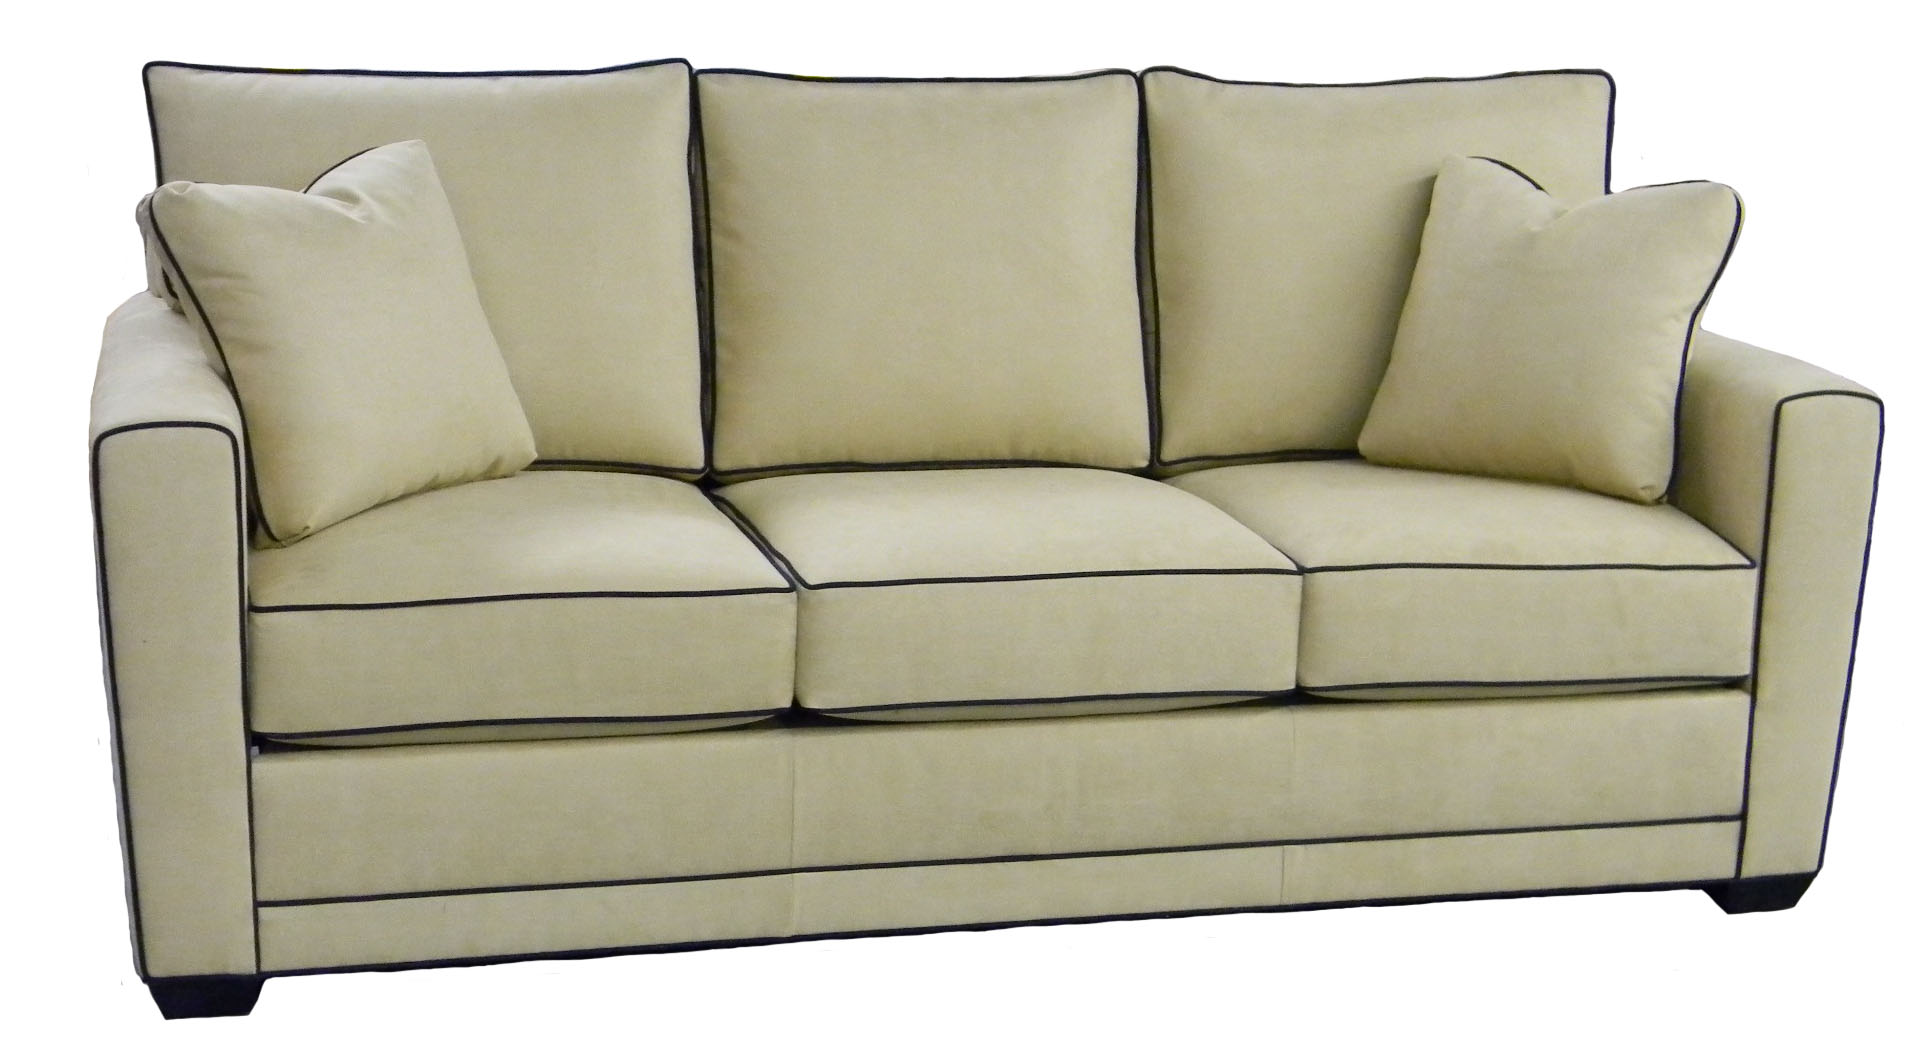 henley sofa and chair makonnen seating joseph jeup thesofa